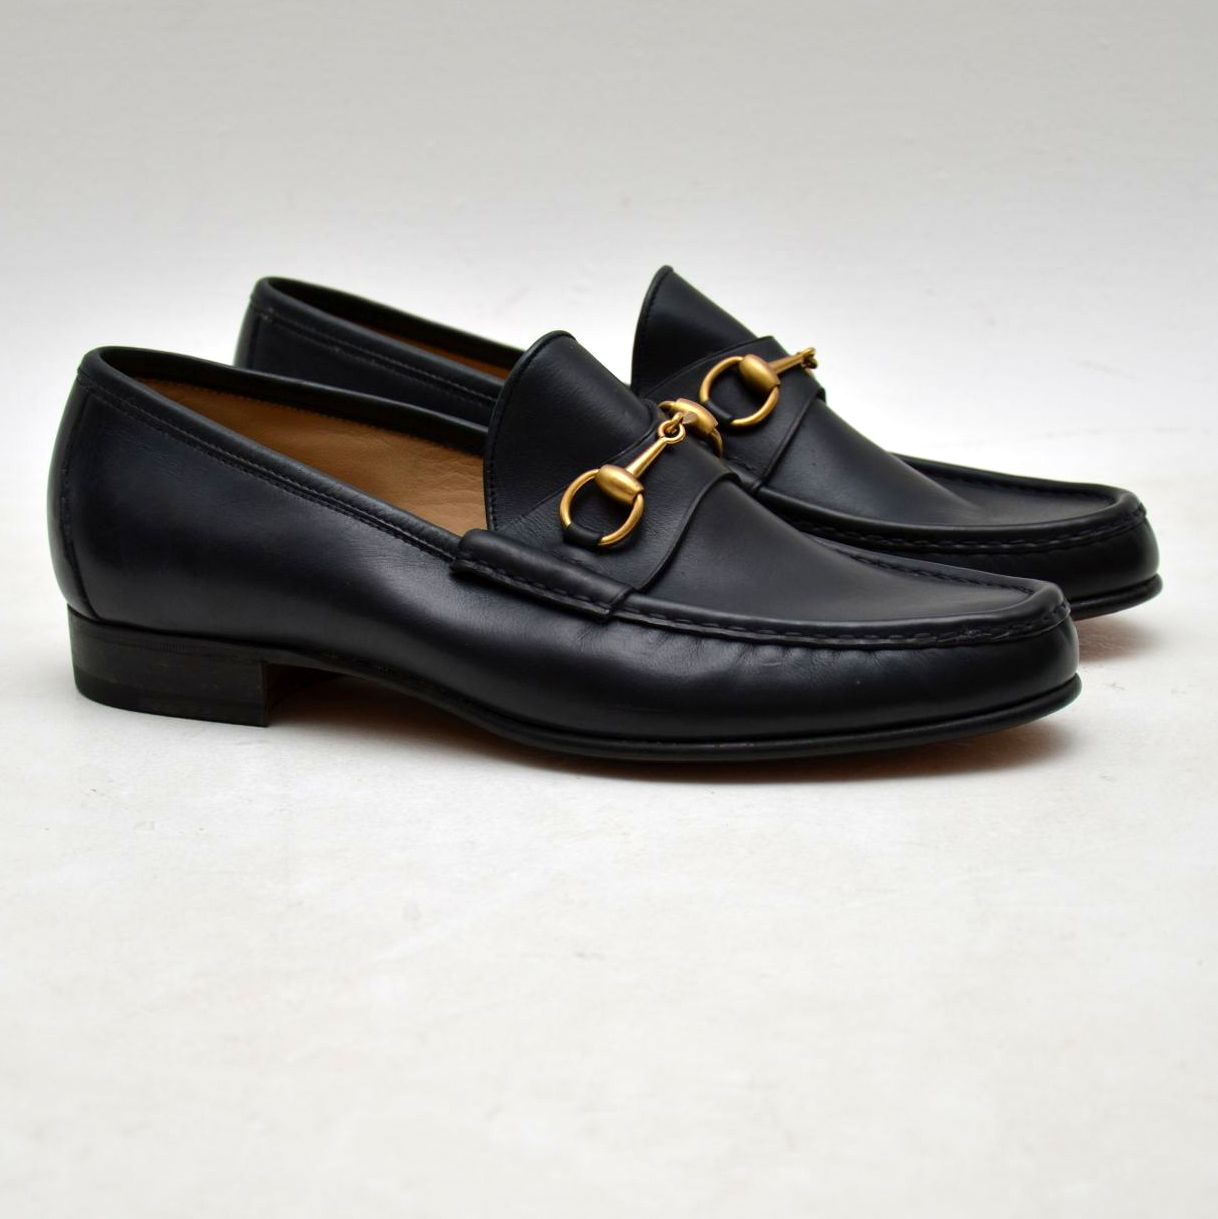 ec5a296e562 Vintage Mens Gucci Loafers UK Size 9.5 - Pristine Condition - Never Been  Worn